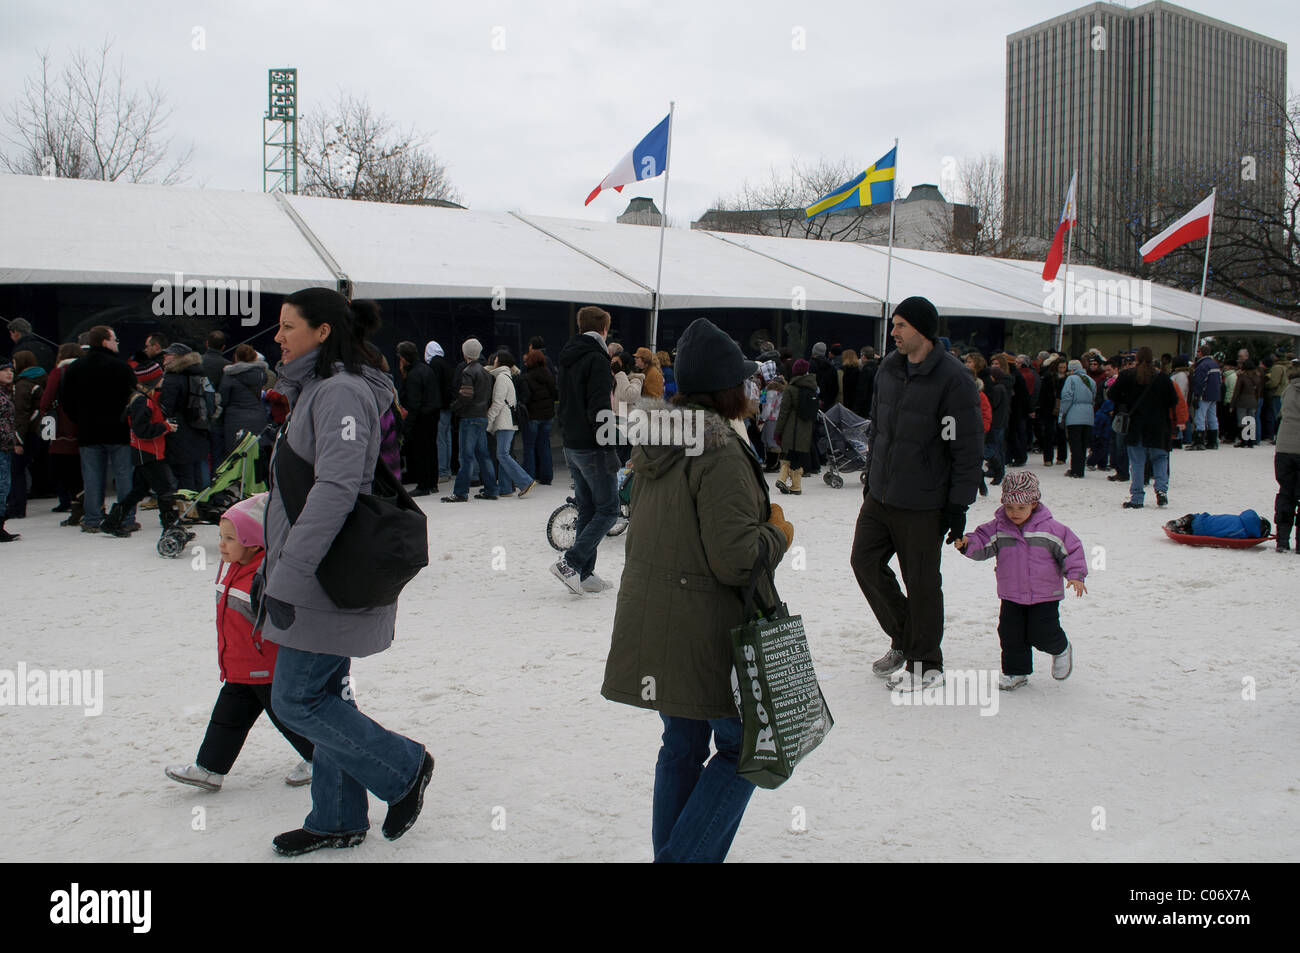 Onlookers watch professional ice carvers at Confederation Park during the first weekend of Winterlude Festivities - Stock Image